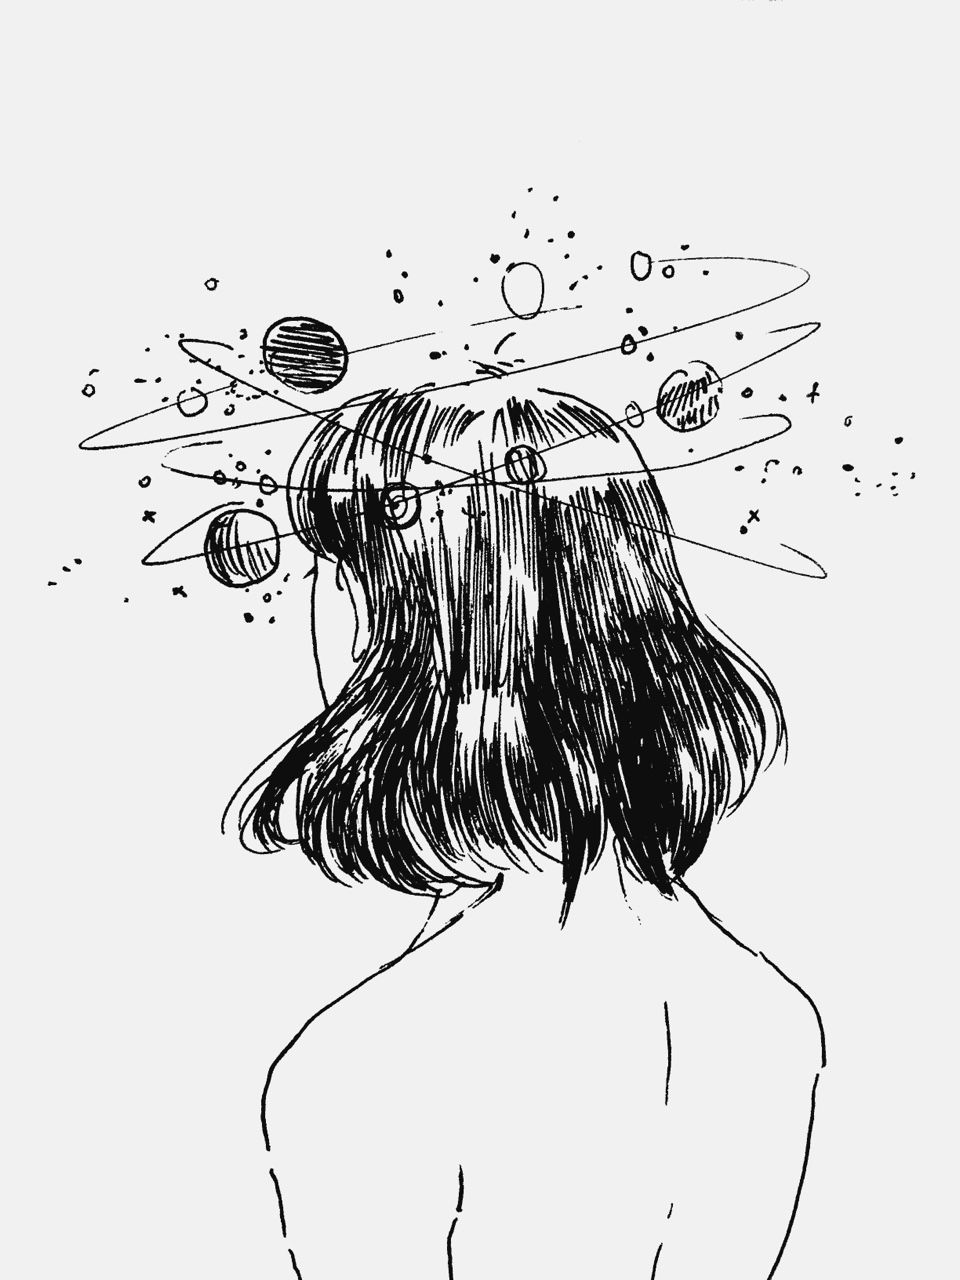 Aesthetic Space Drawing Tumblr